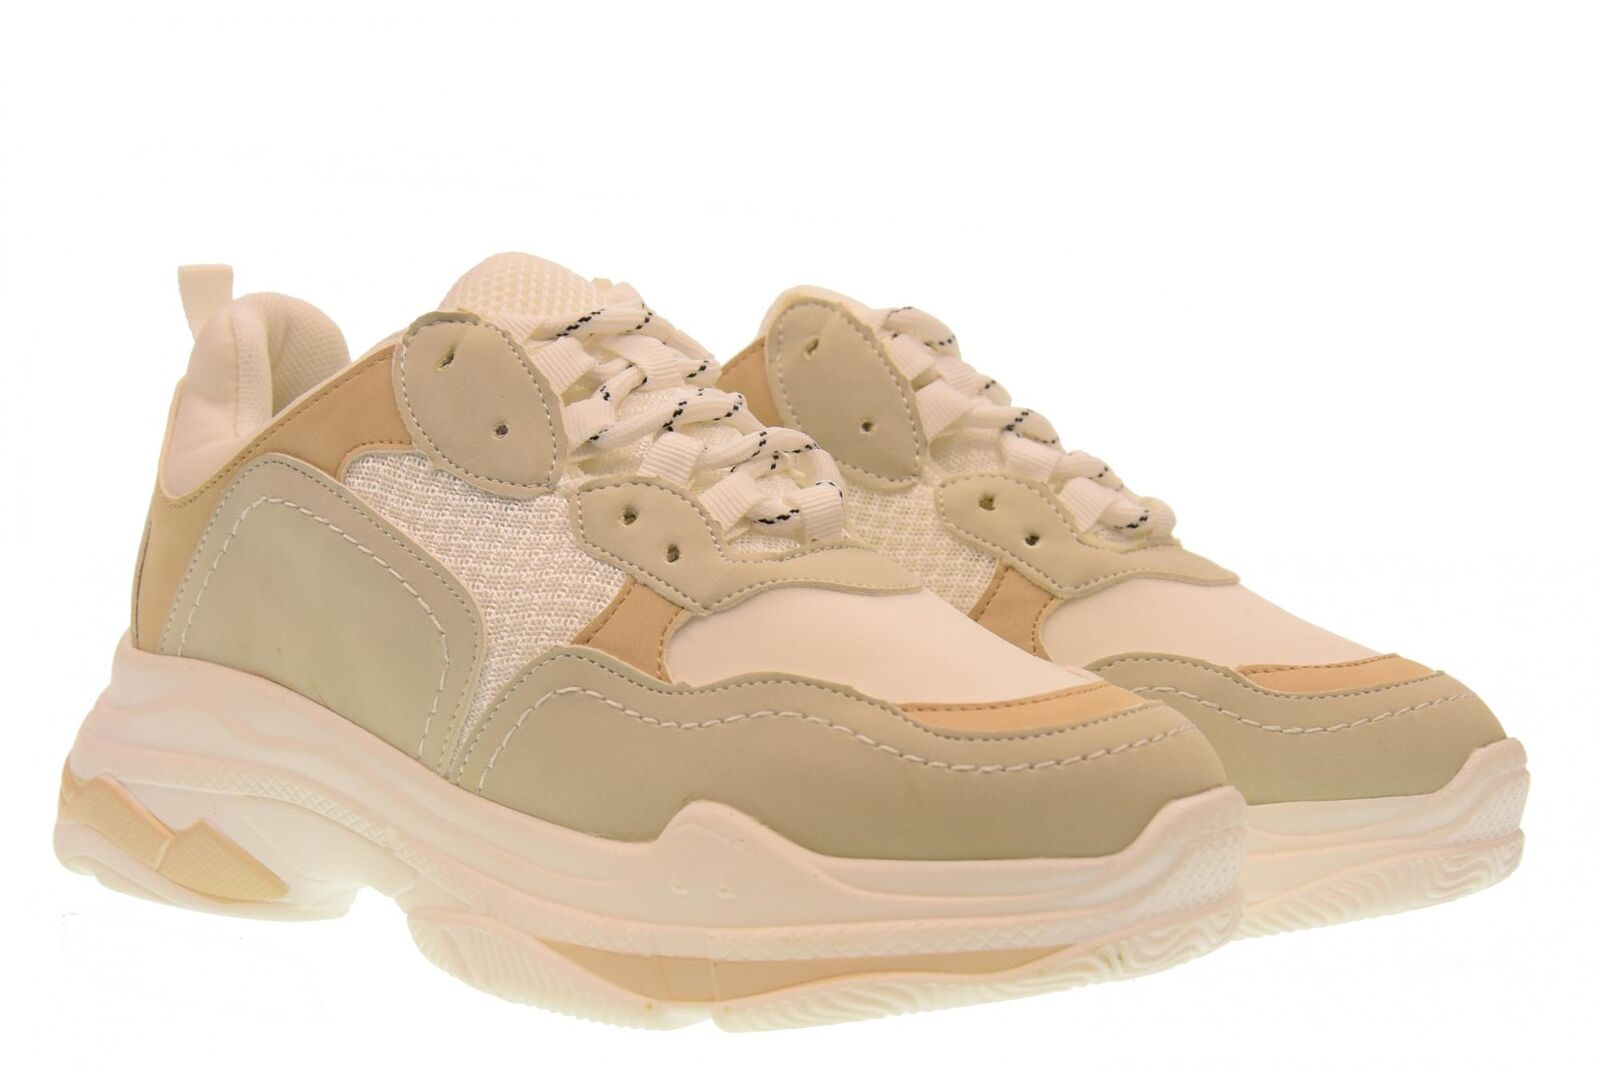 or & or A18u Chaussures Femme Low Baskets gt530 Bianco-beige